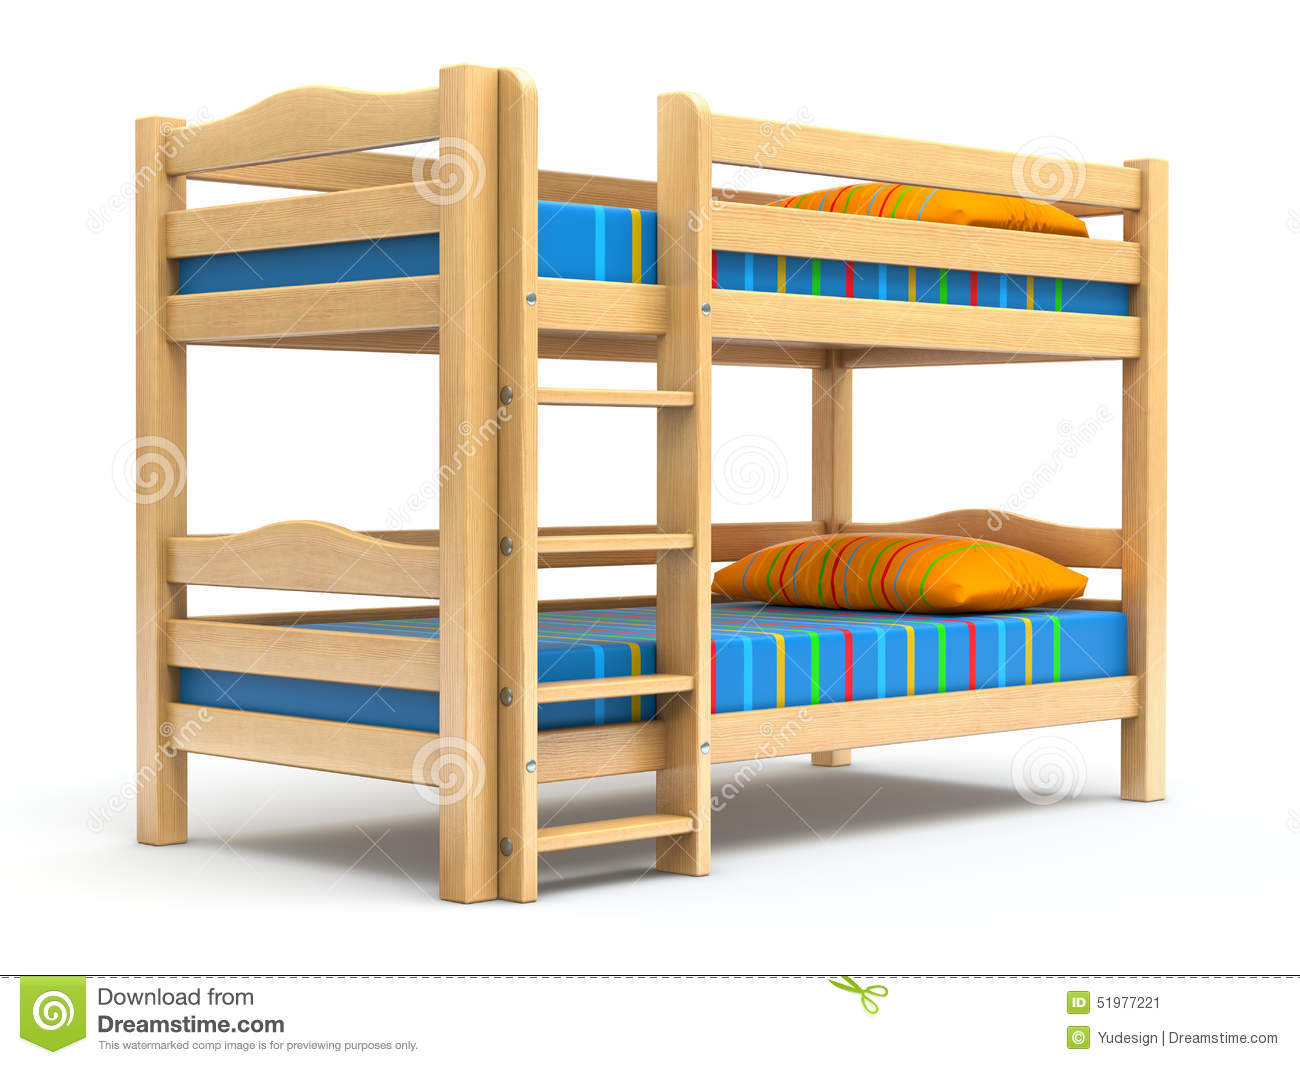 Kids Bunk Bed Stock Illustration - Image: 51977221